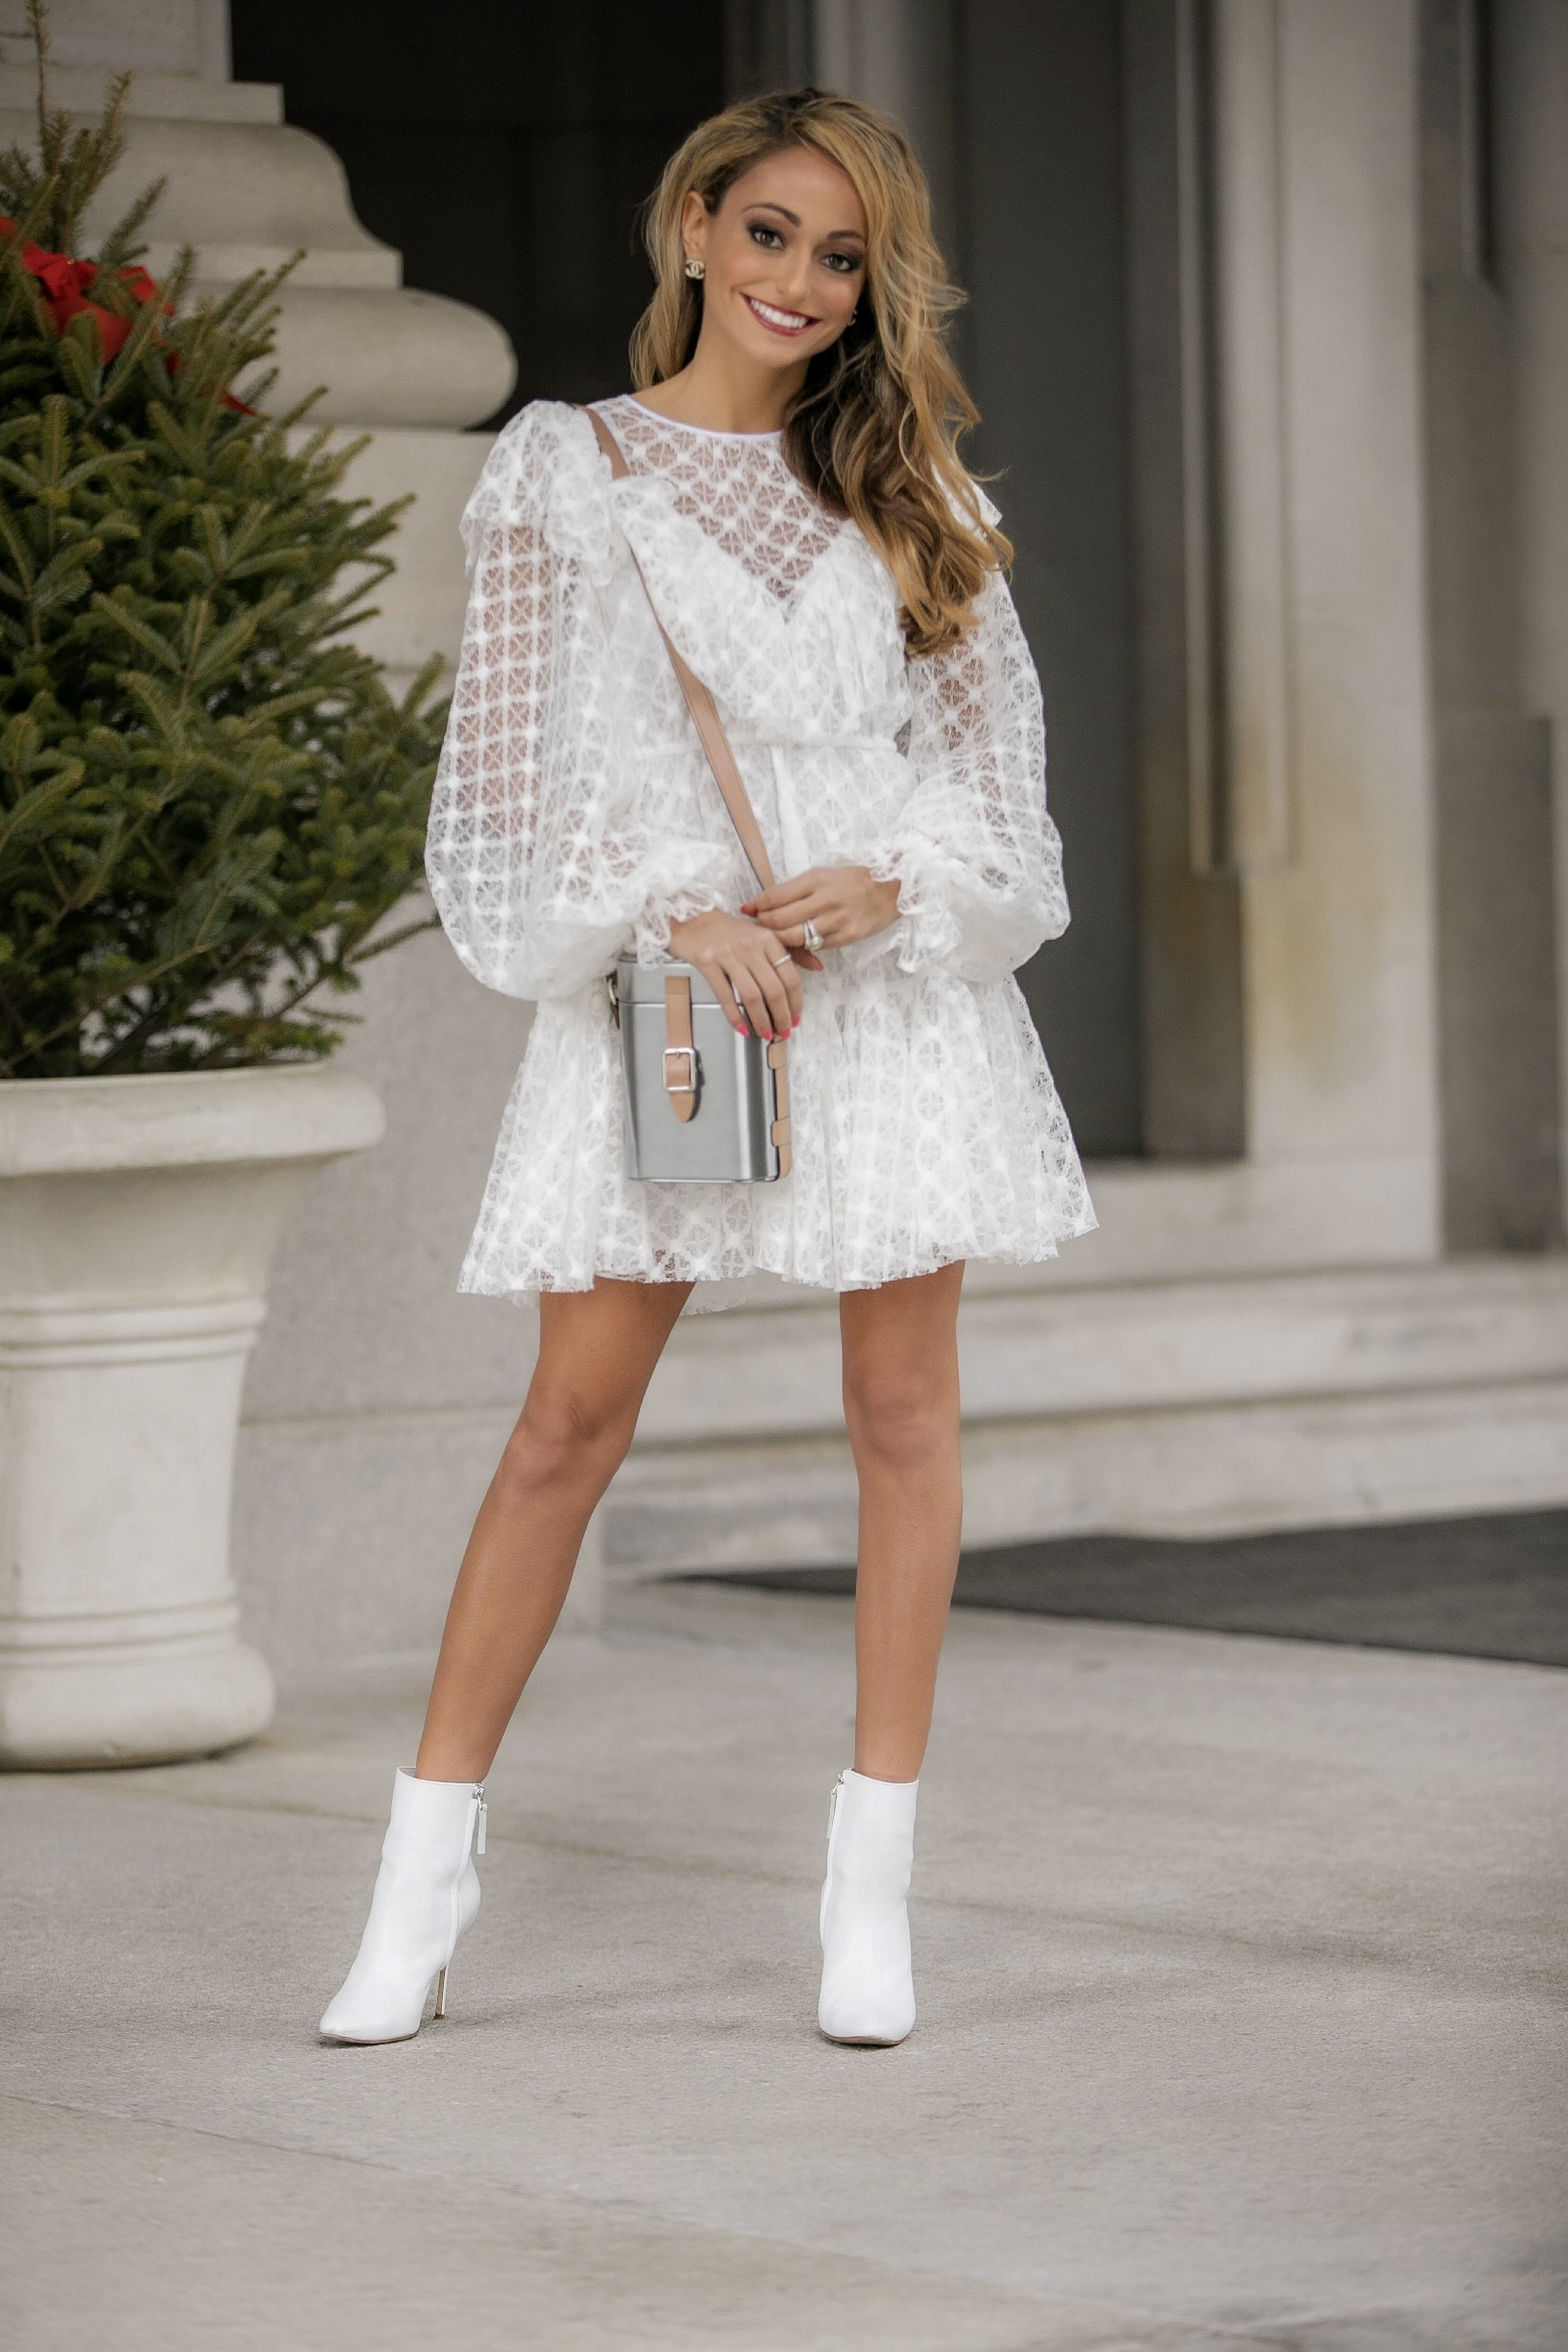 white lace dress by Milly, Officinal Del Poggio bag, Manolo Blahnik booties